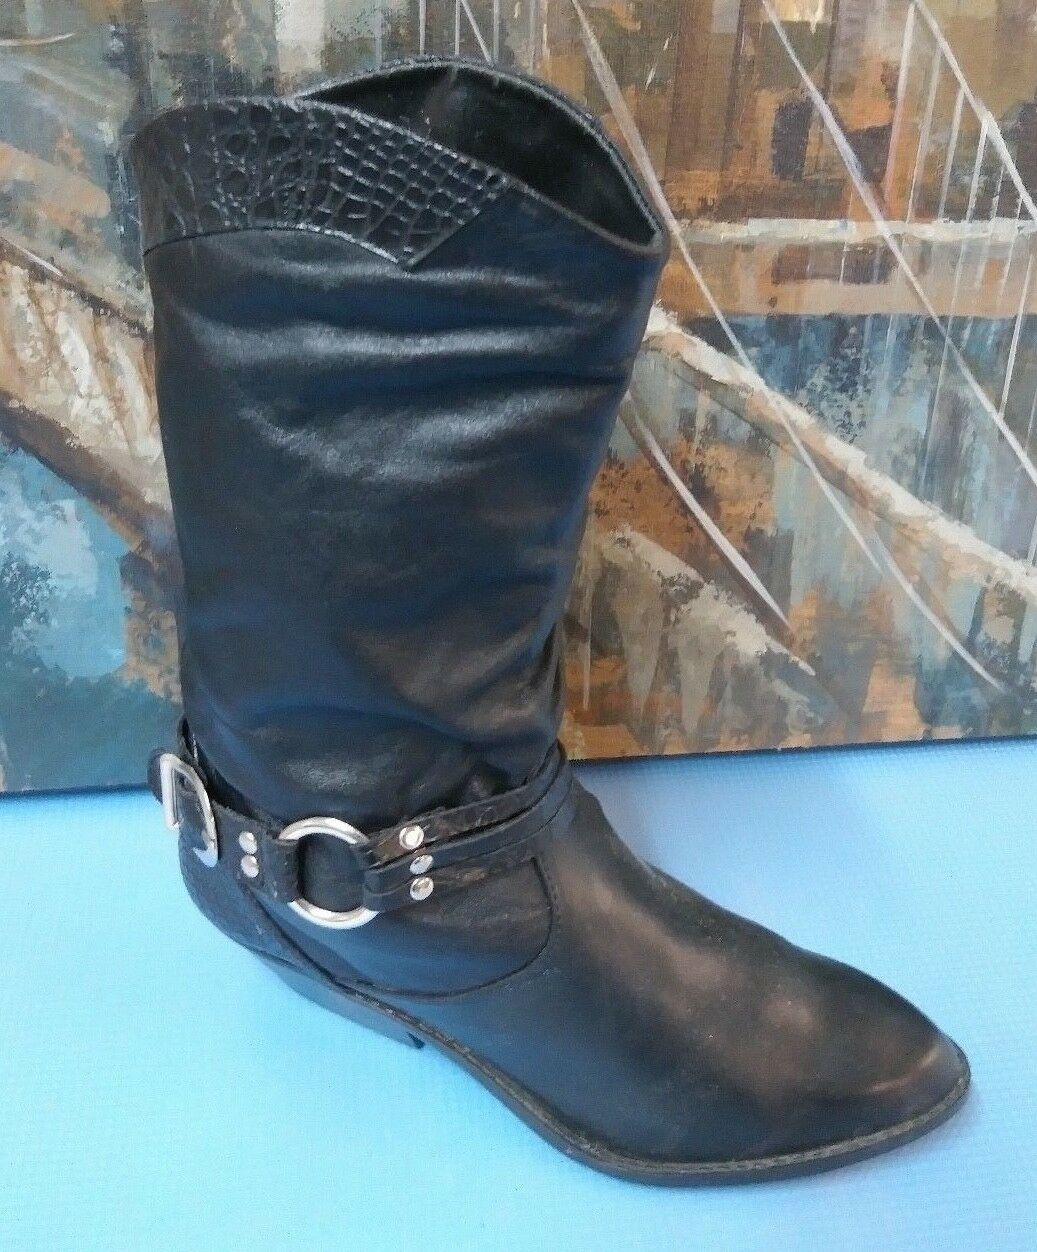 LEATHER CRAFT Black Leather Western Boots Cowboy Cowgirl Women's Size 6.5 M